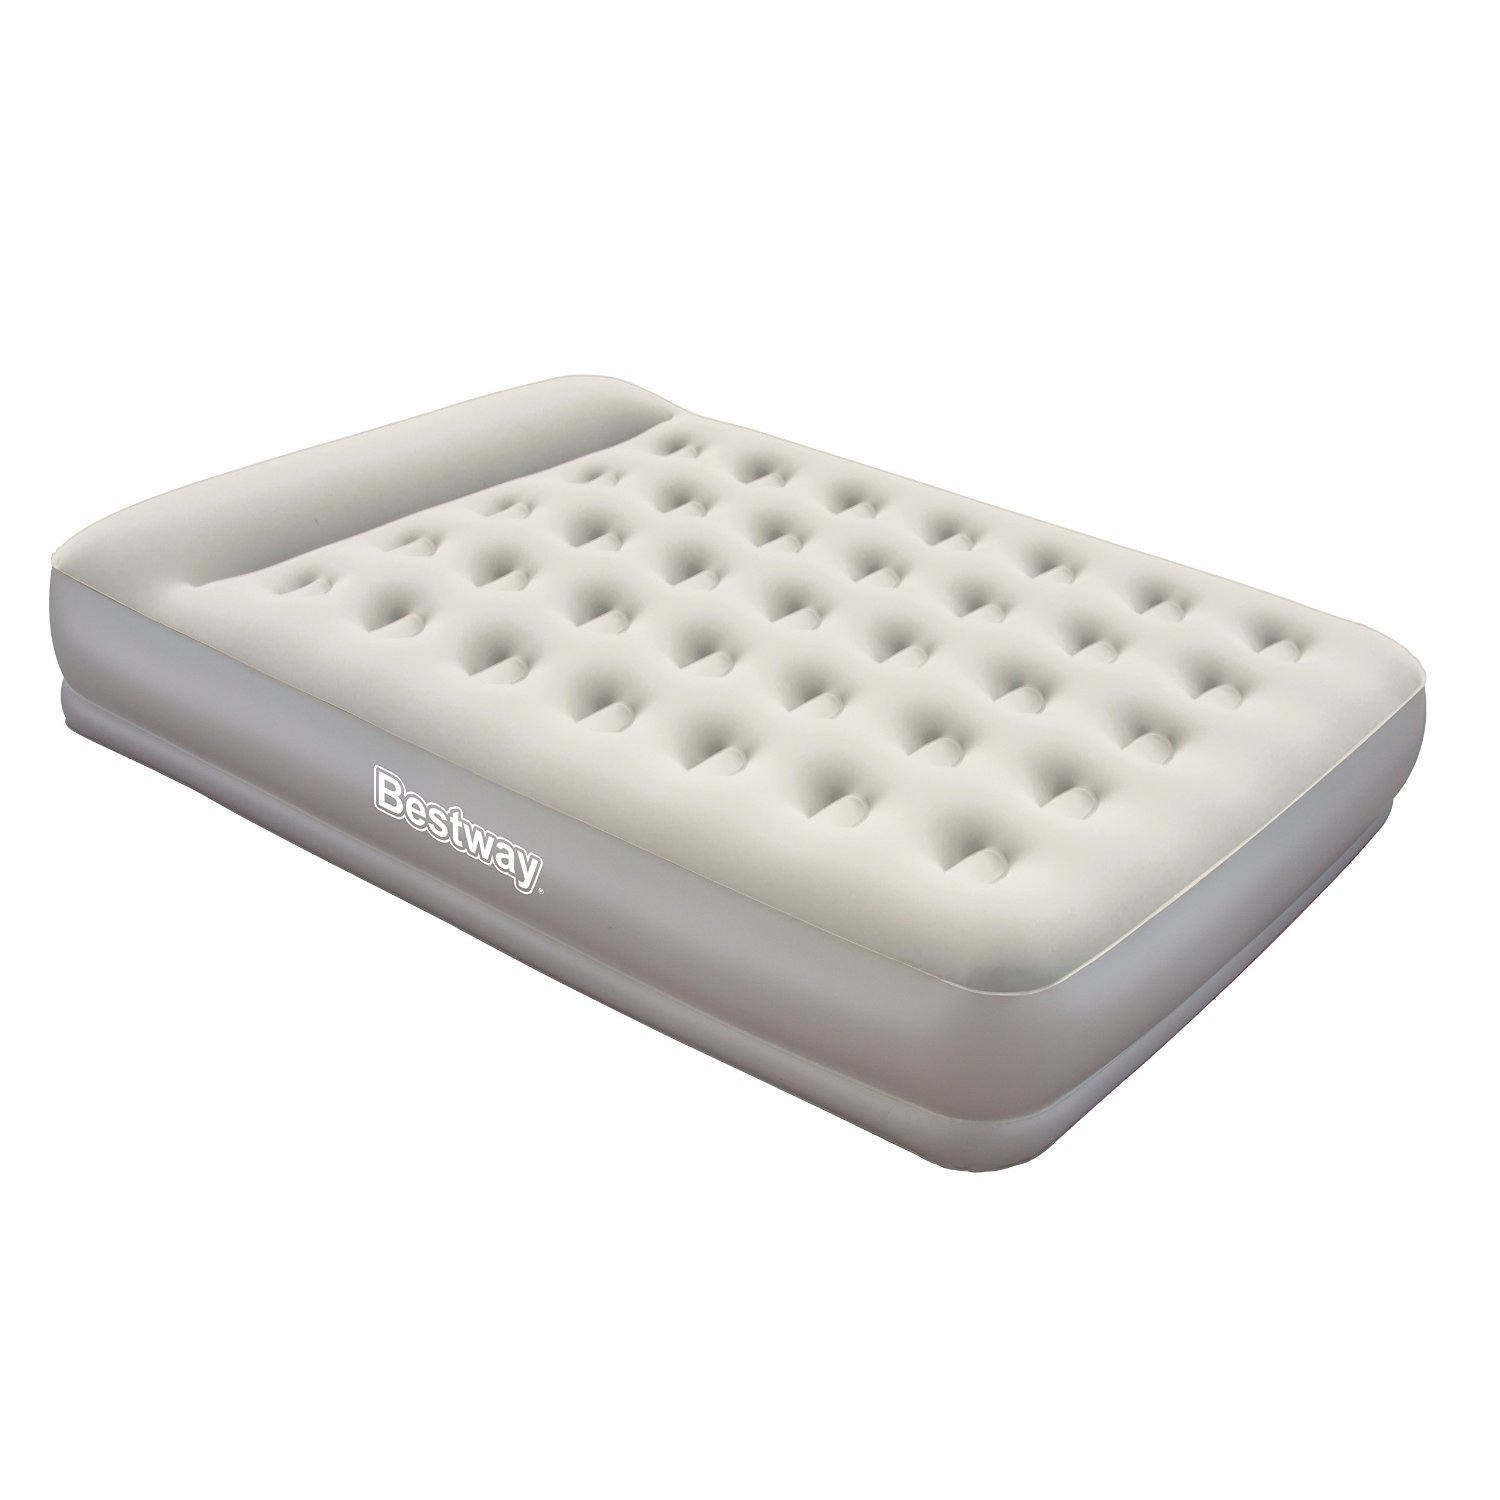 queen air bed inflatable airbed double guest mattress inbuilt pillow and pump ebay. Black Bedroom Furniture Sets. Home Design Ideas